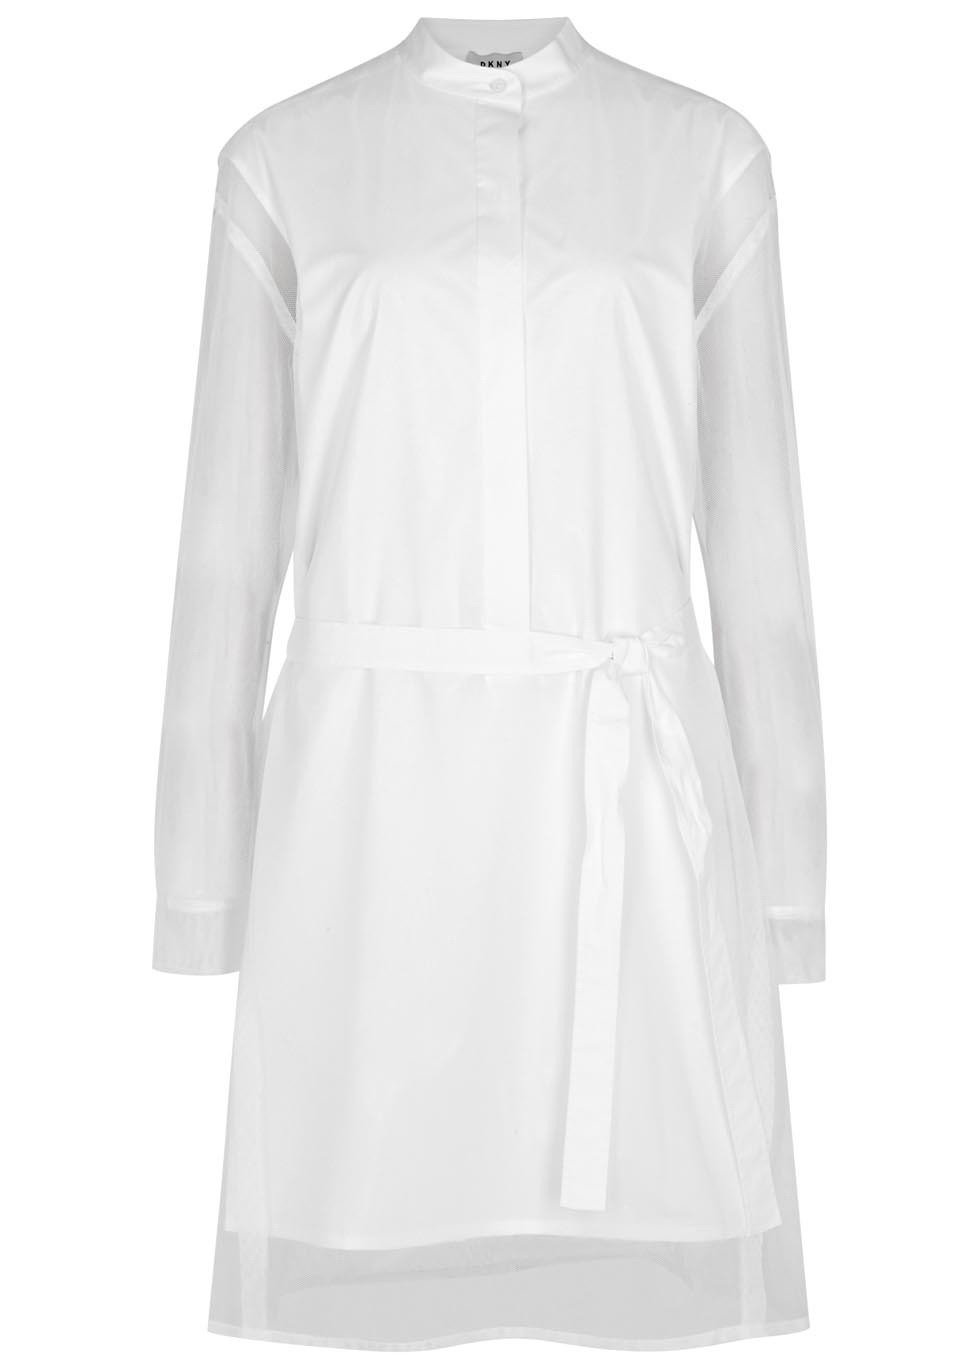 White Layered Stretch Cotton Shirt Dress - style: shirt; pattern: plain; predominant colour: white; occasions: casual; length: just above the knee; fit: body skimming; neckline: collarstand; fibres: cotton - stretch; sleeve length: long sleeve; sleeve style: standard; texture group: cotton feel fabrics; pattern type: fabric; season: s/s 2016; wardrobe: basic